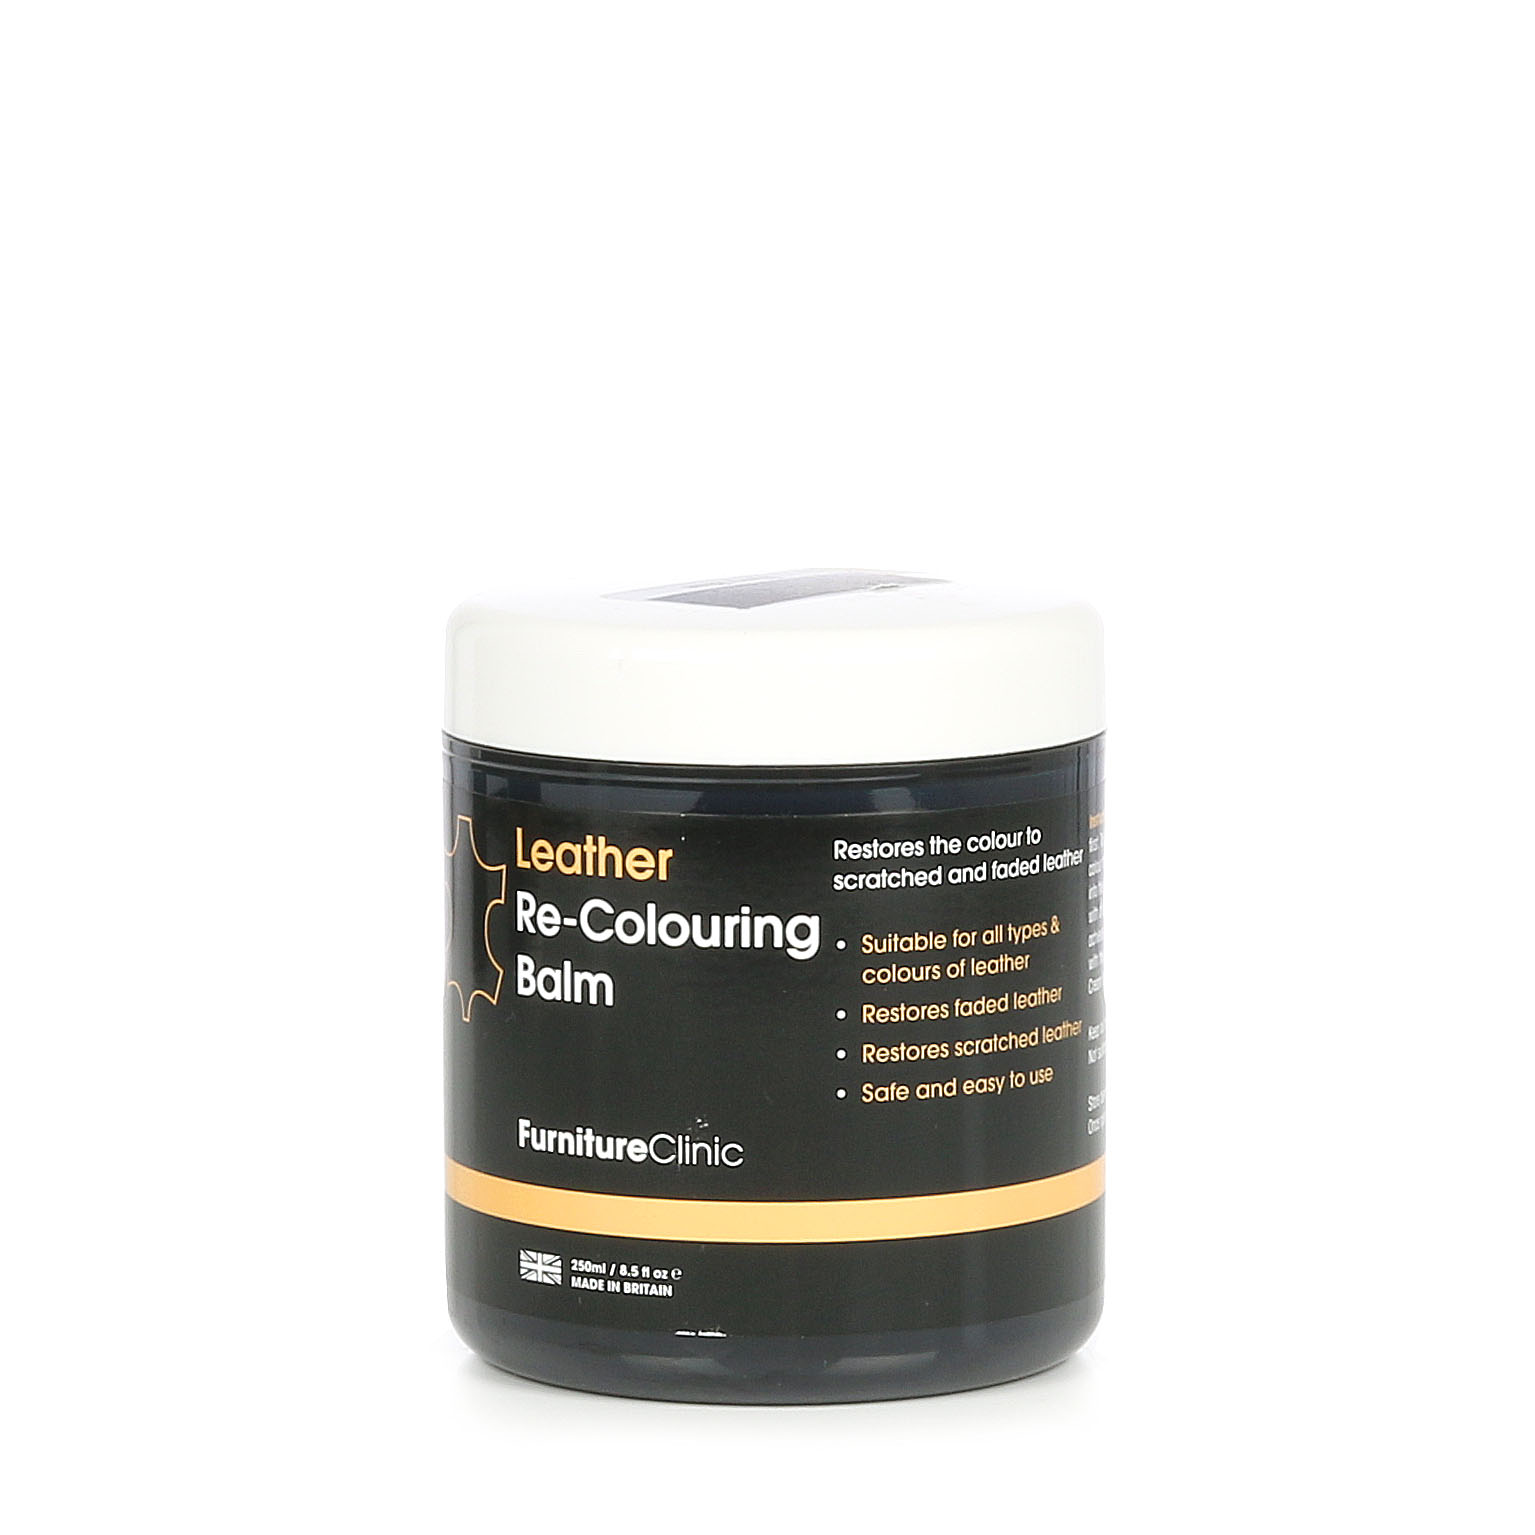 Läderfärgningsmedel Furniture Clinic Leather Re-Colouring Balm, 250 ml, Beige